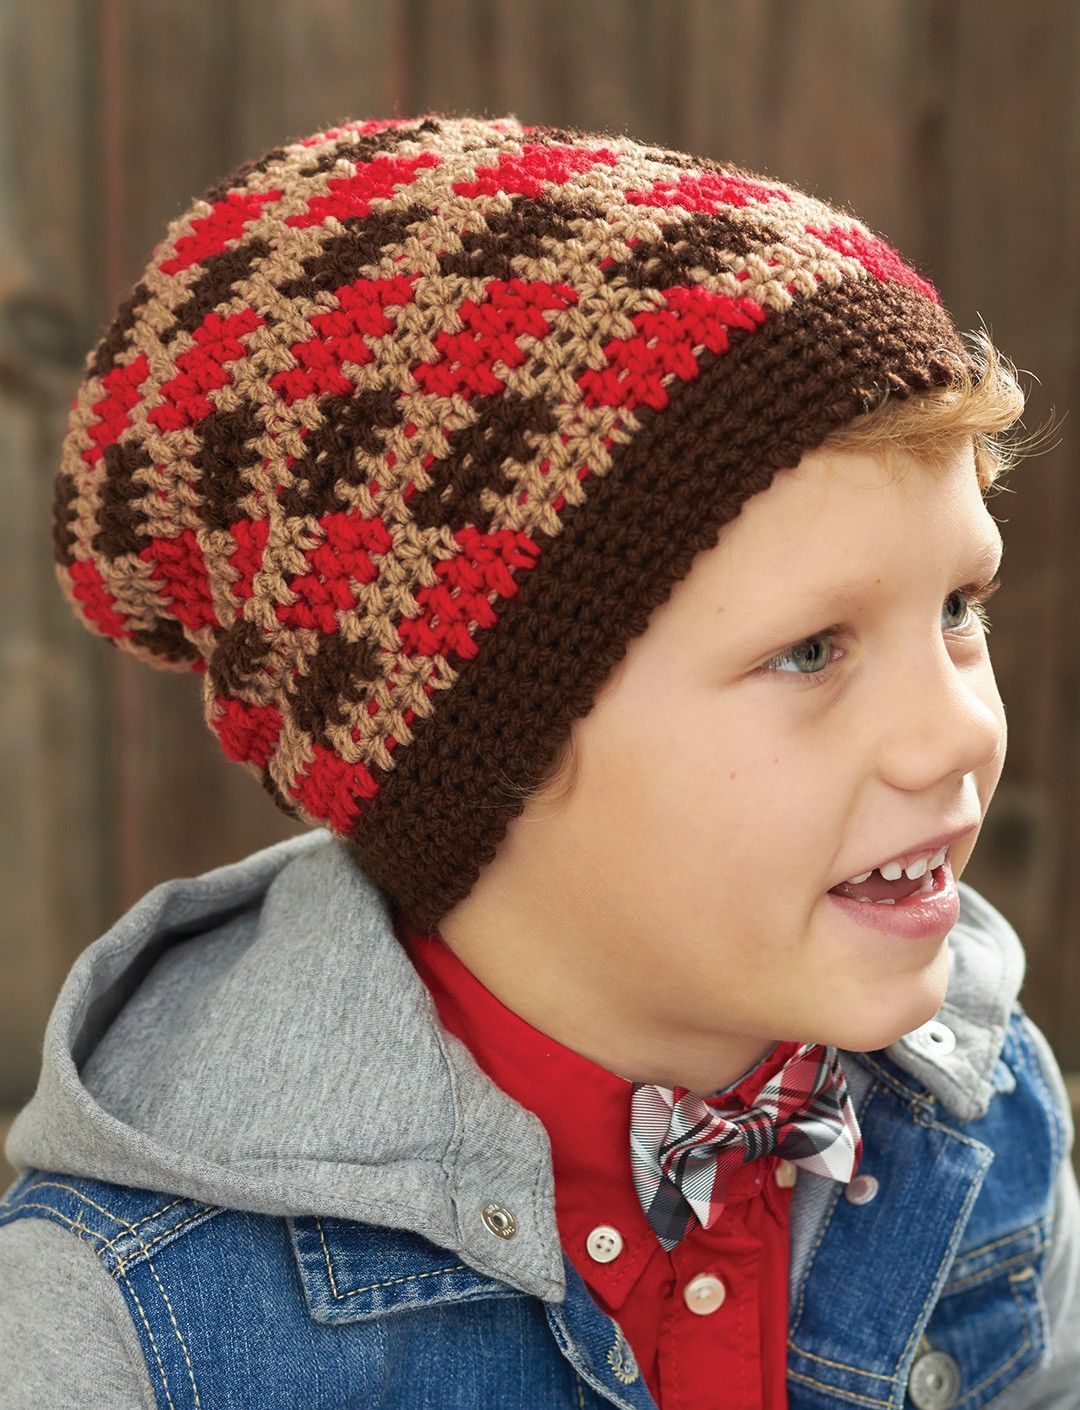 Yarnspirations.com - Patons Gingham Hat - Patterns | Yarnspirations ...